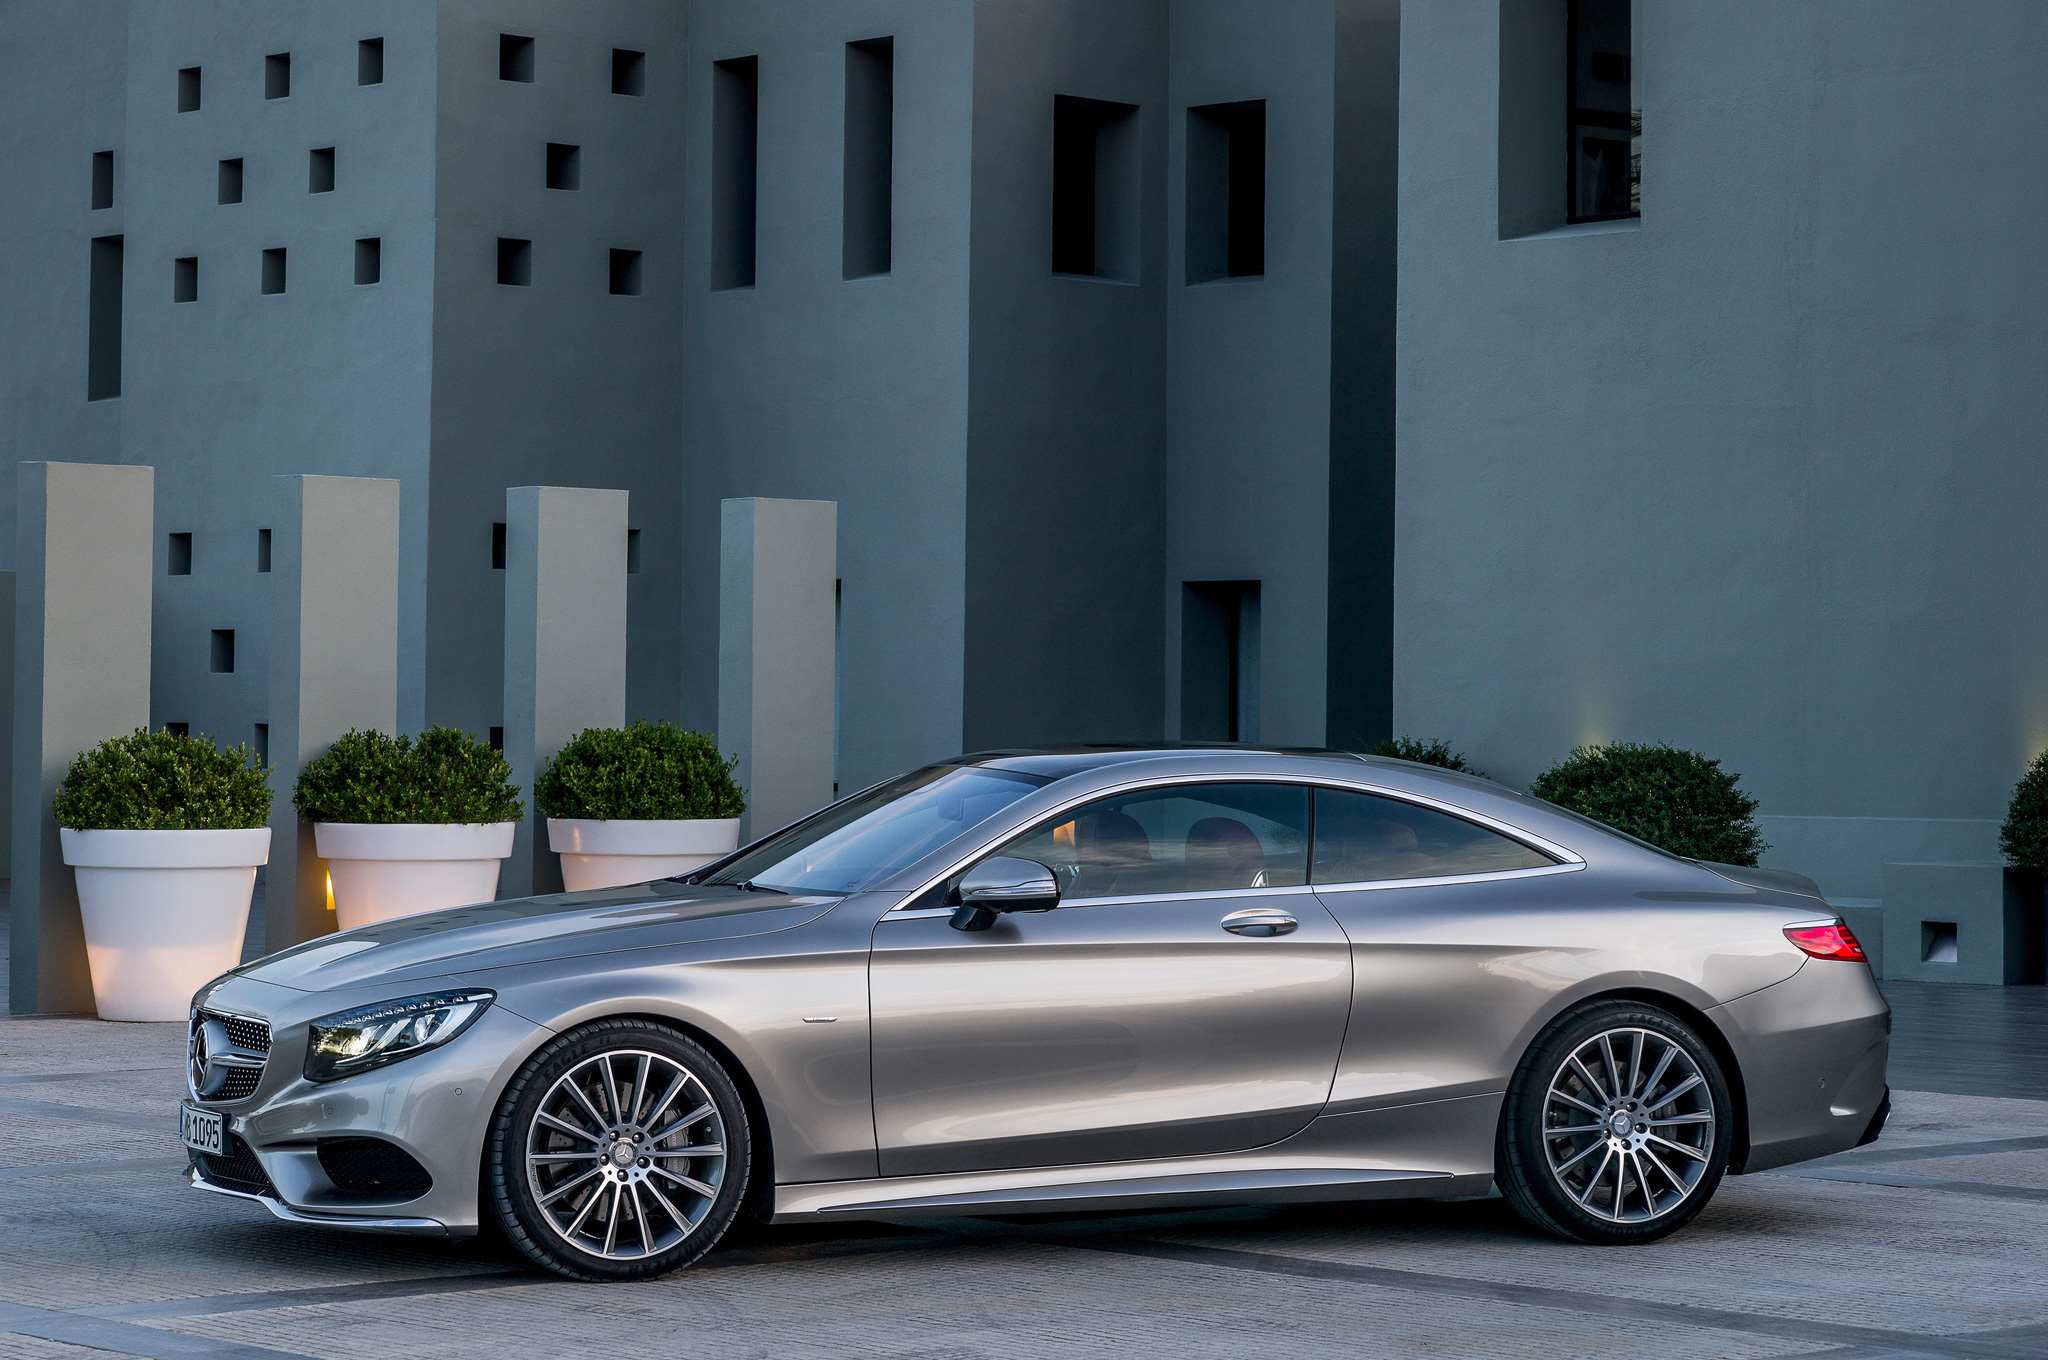 Mercedes Benz S-Class Coupe